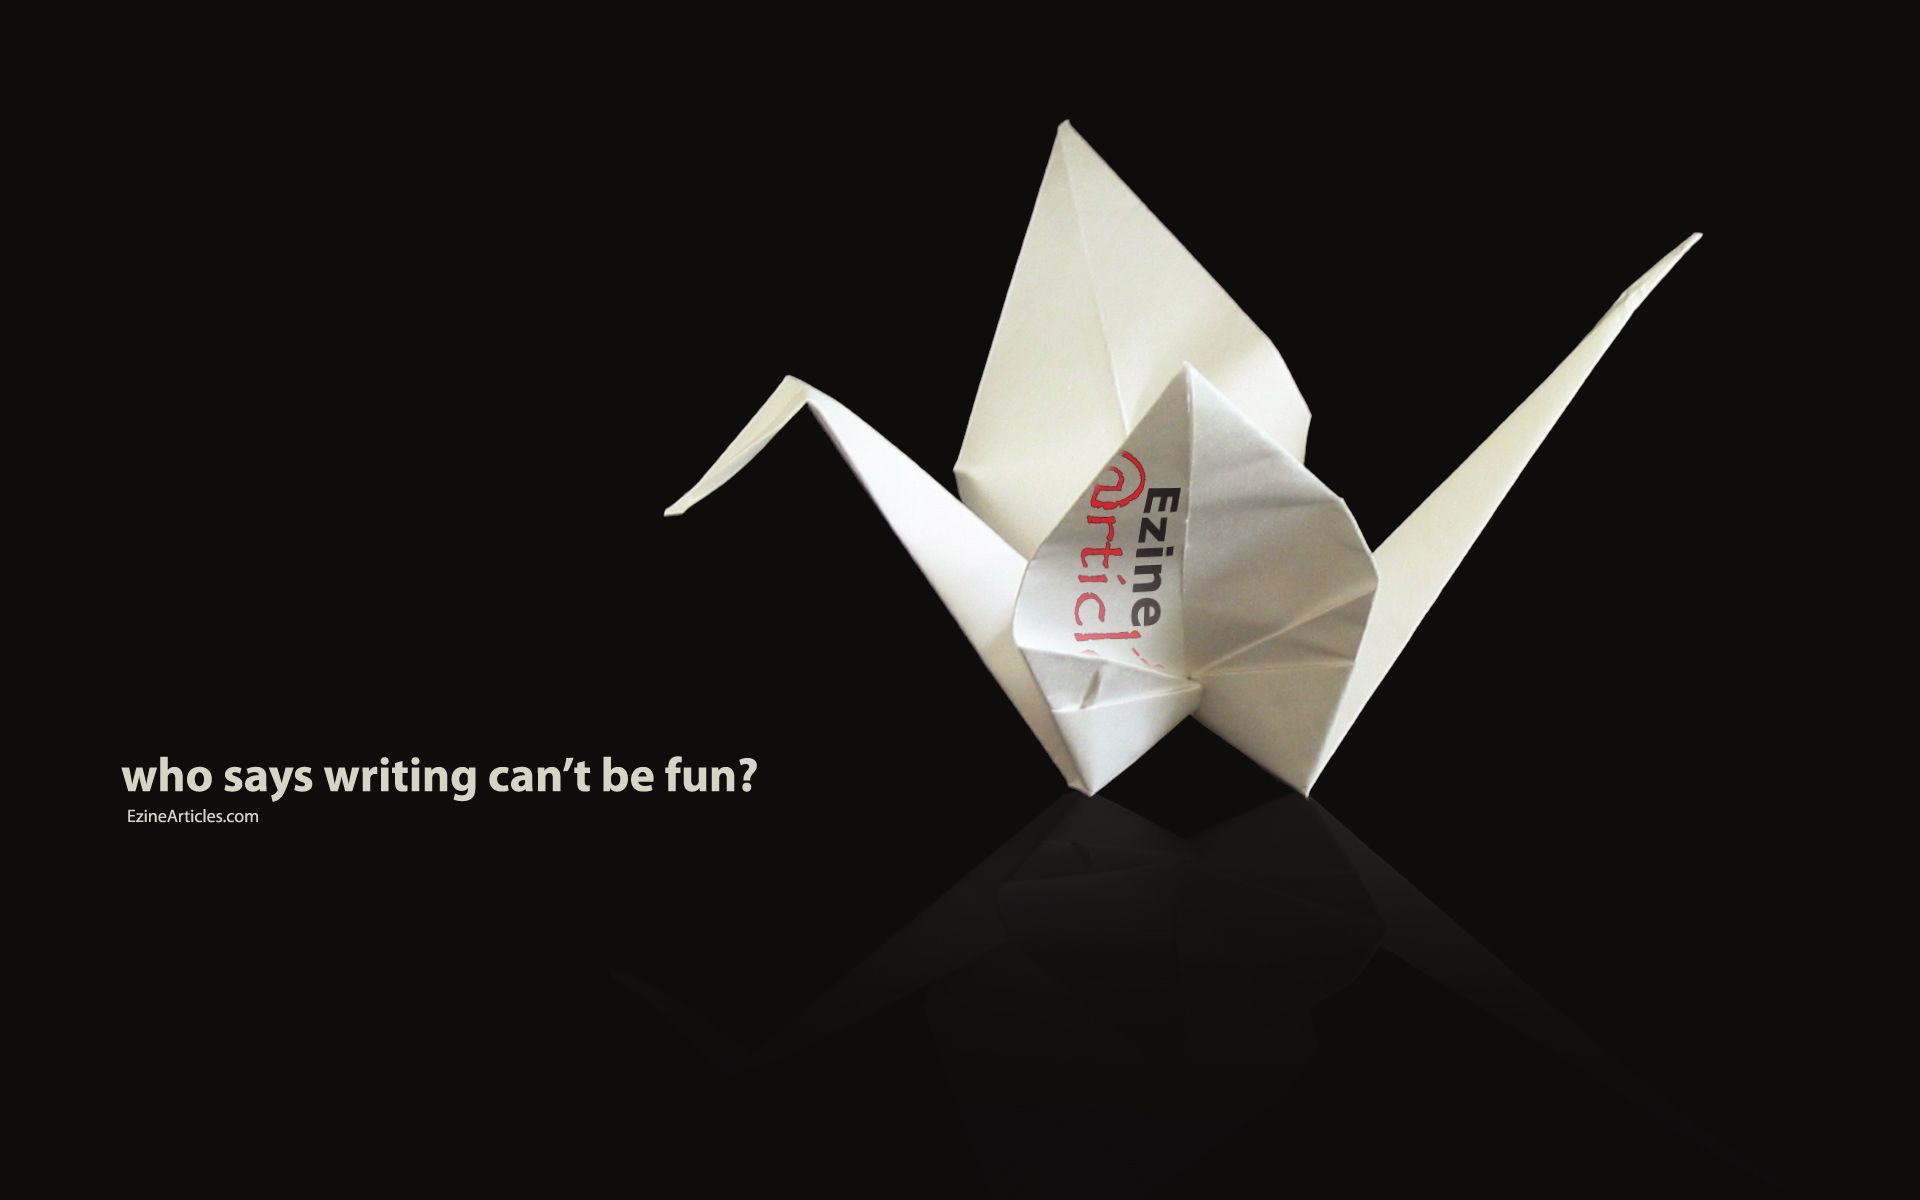 origami free wallpaper - photo #27